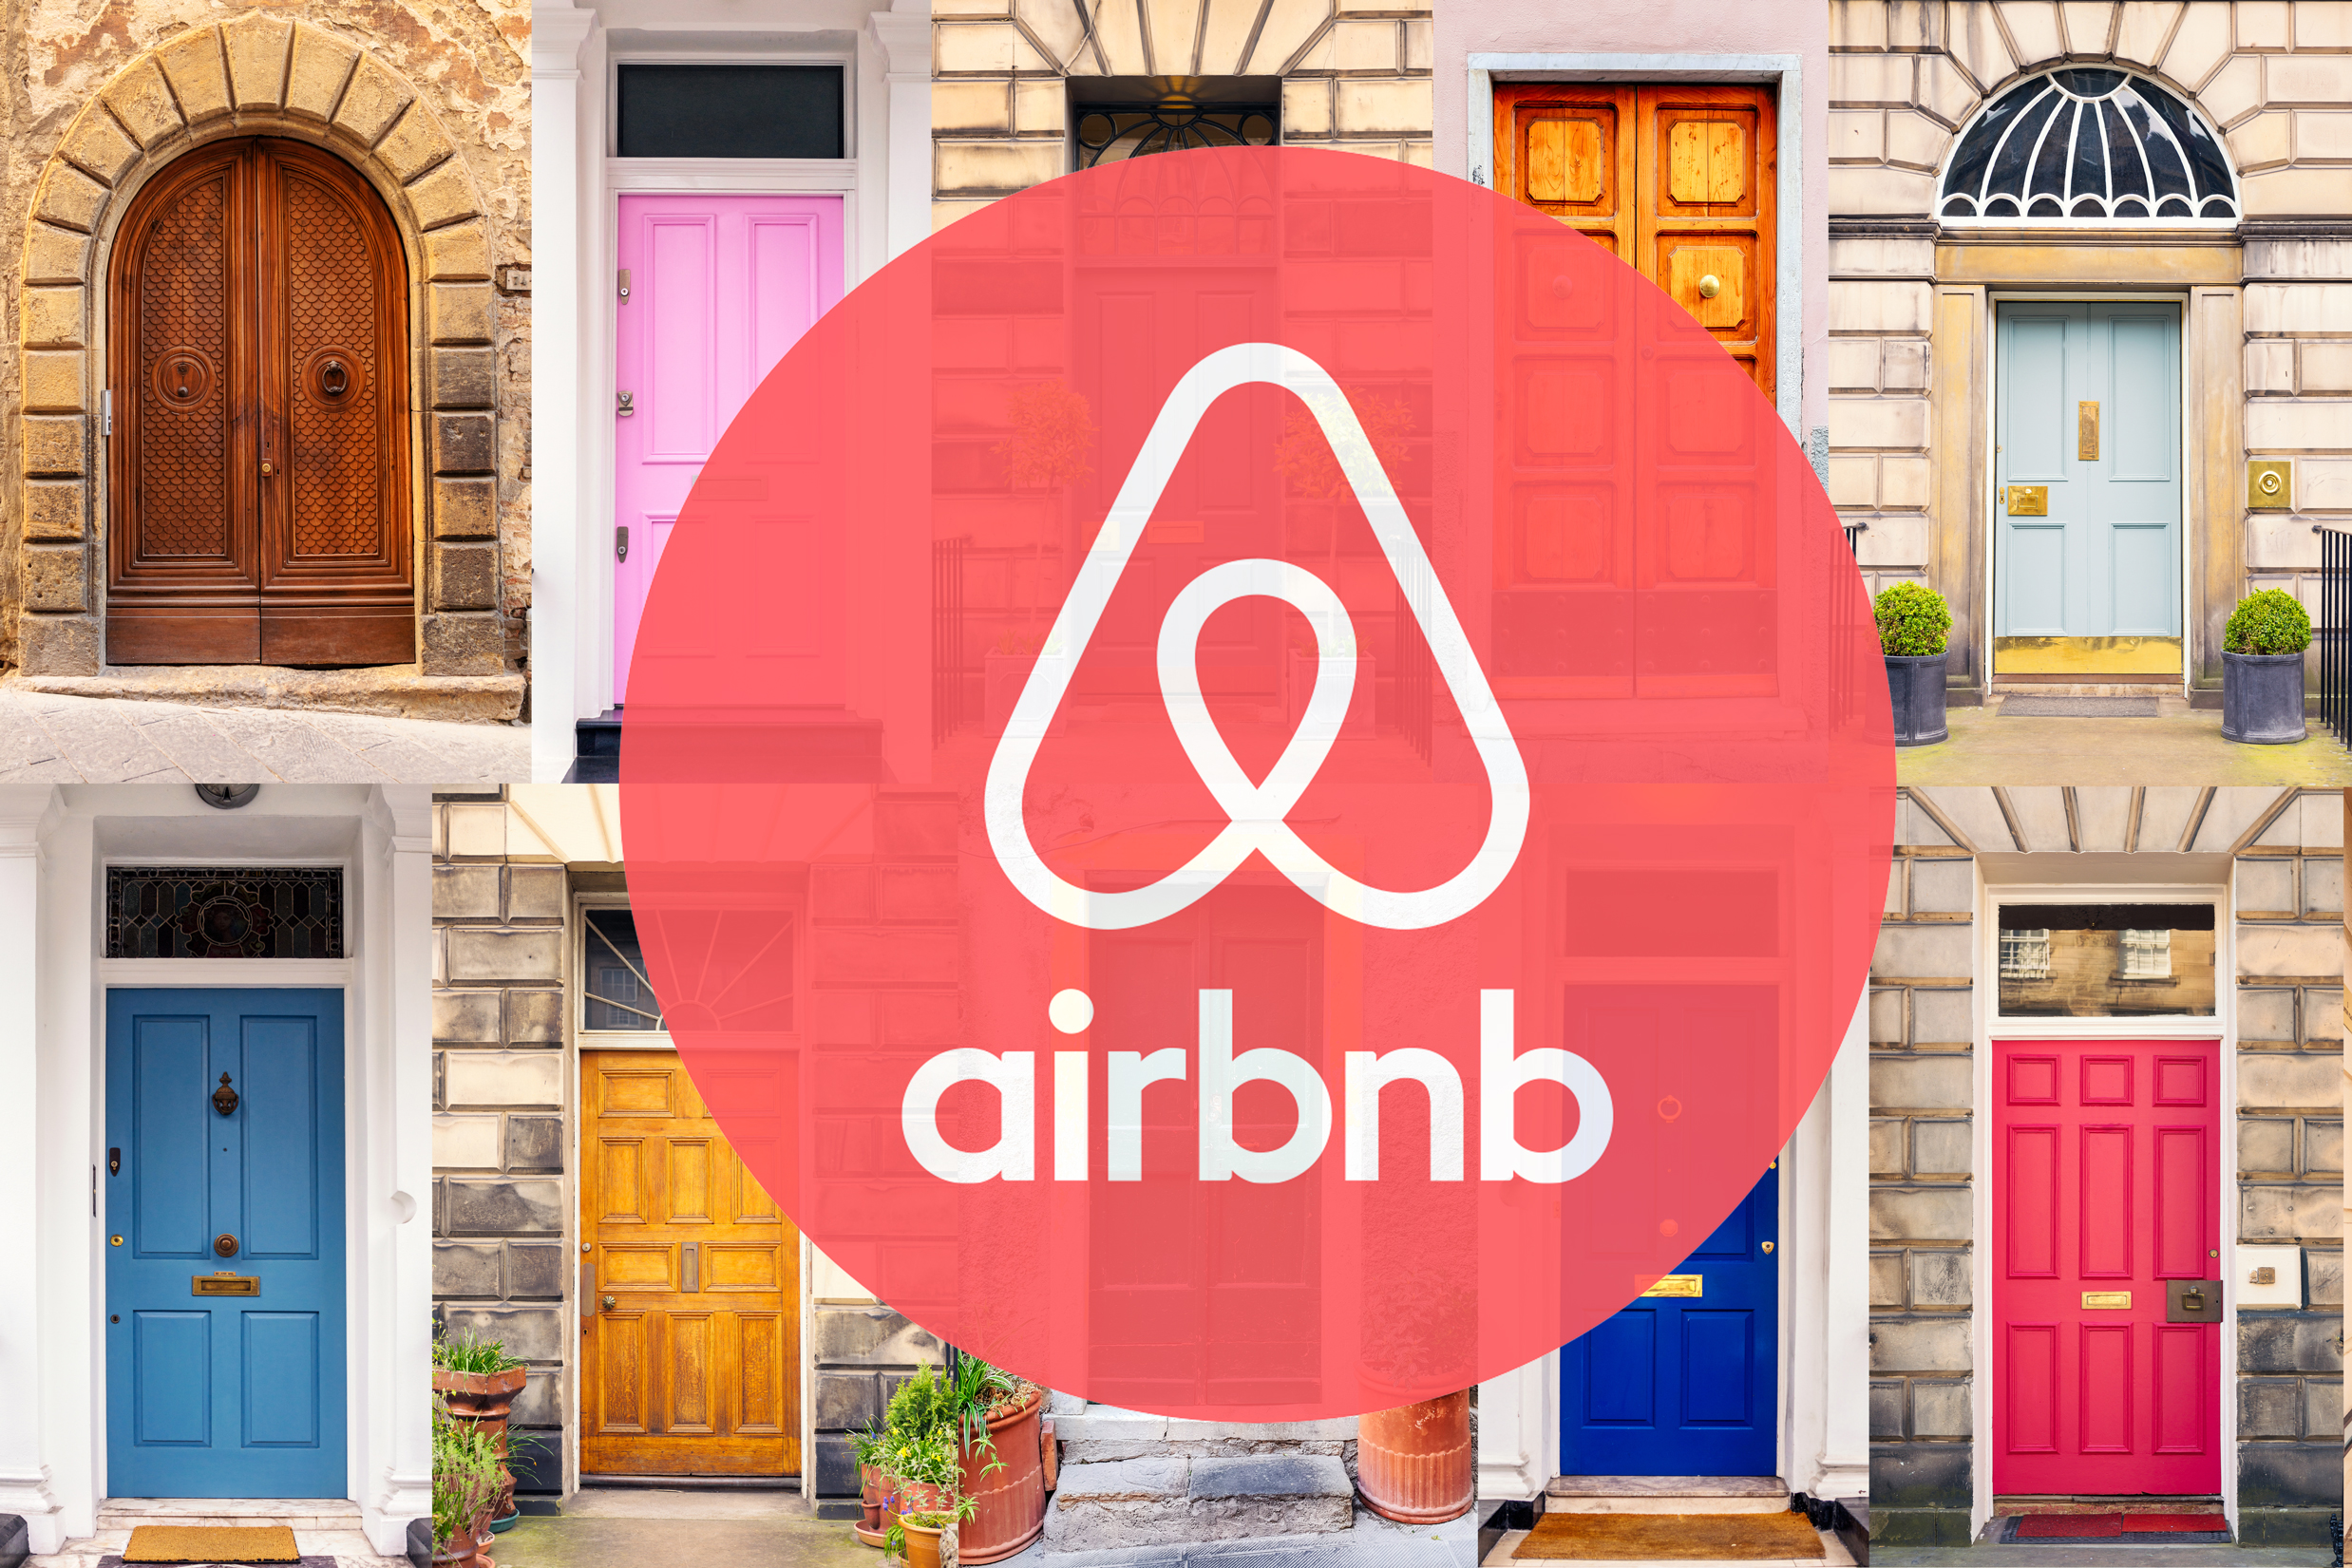 Airbnb job cuts took a heavy toll on marketers, designers and data scientists